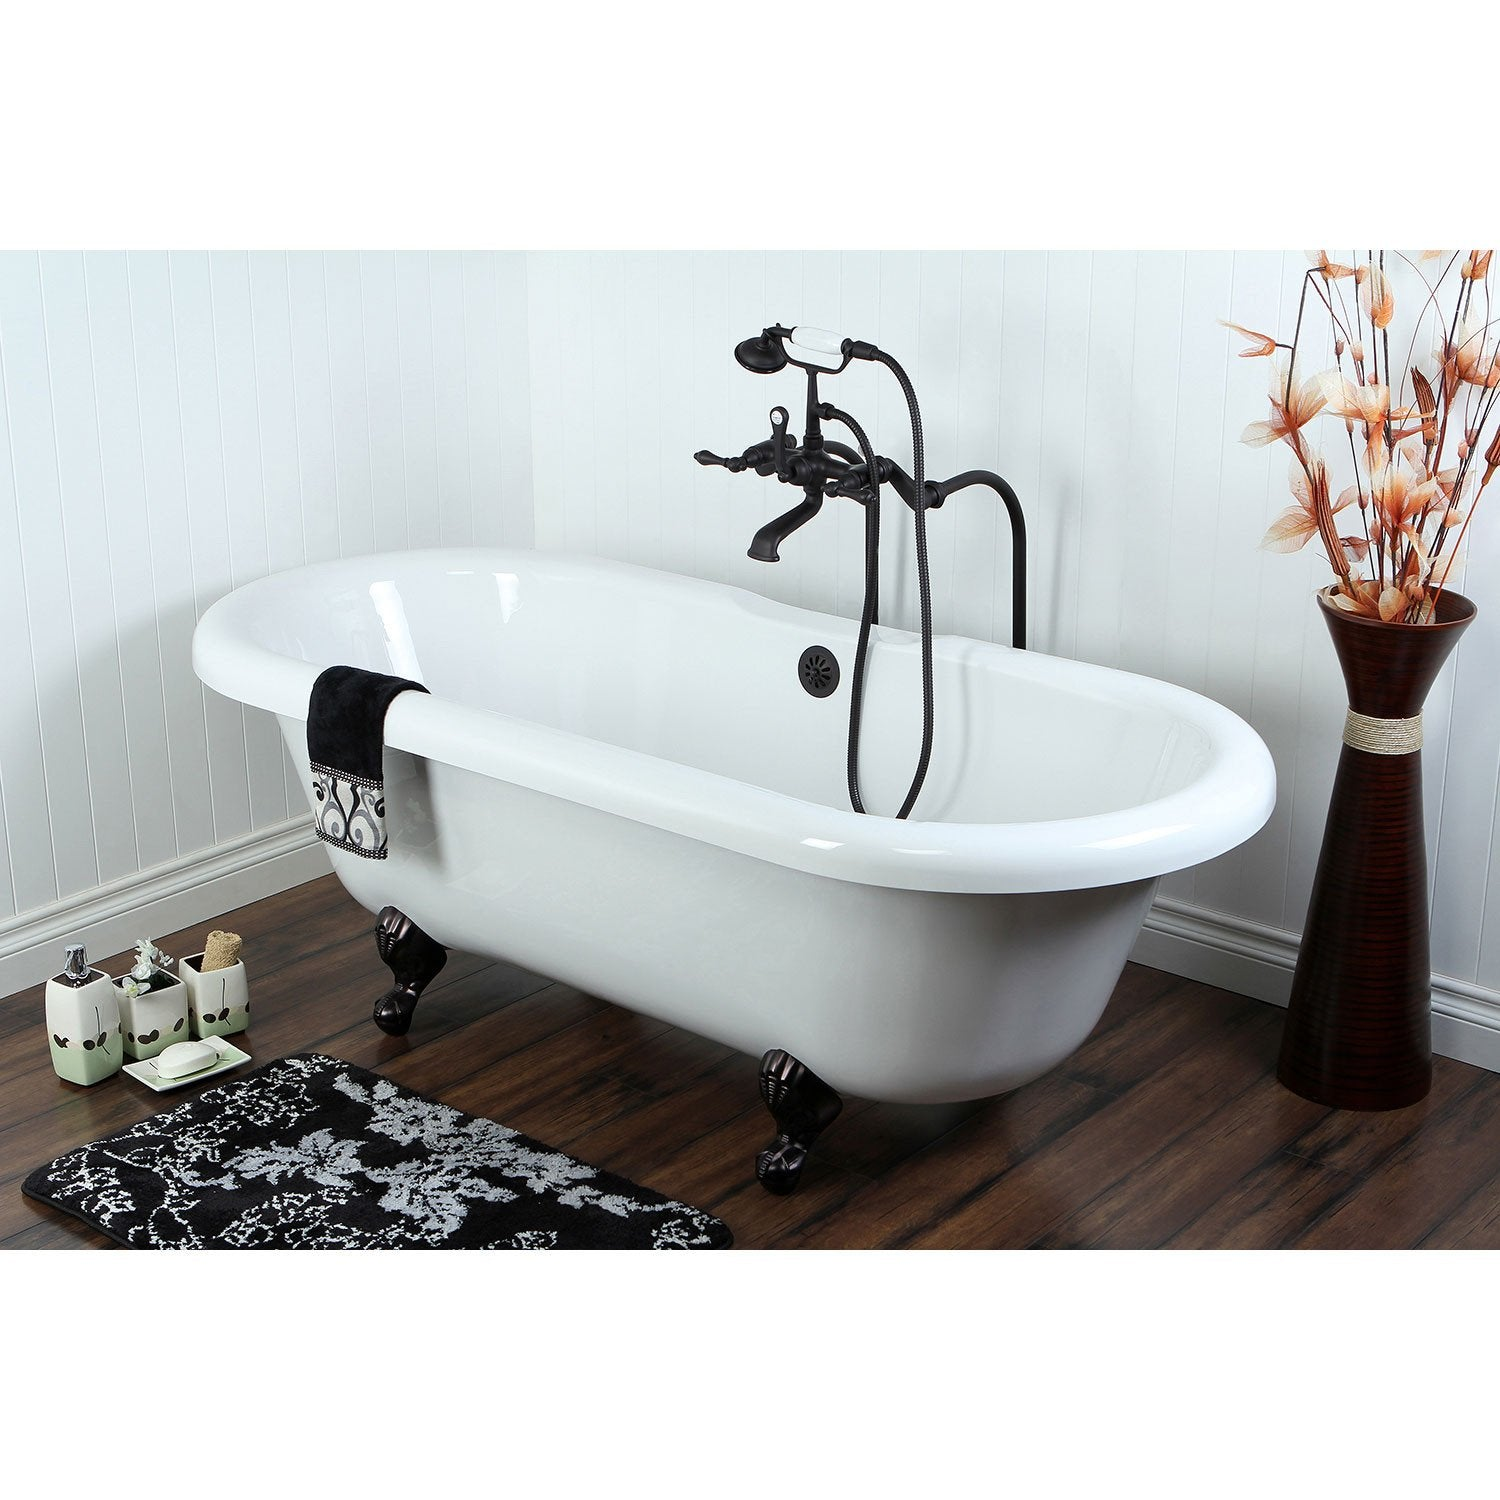 "67"" Clawfoot Tub with Freestanding Oil Rubbed Bronze Tub Faucet Package CTP55"